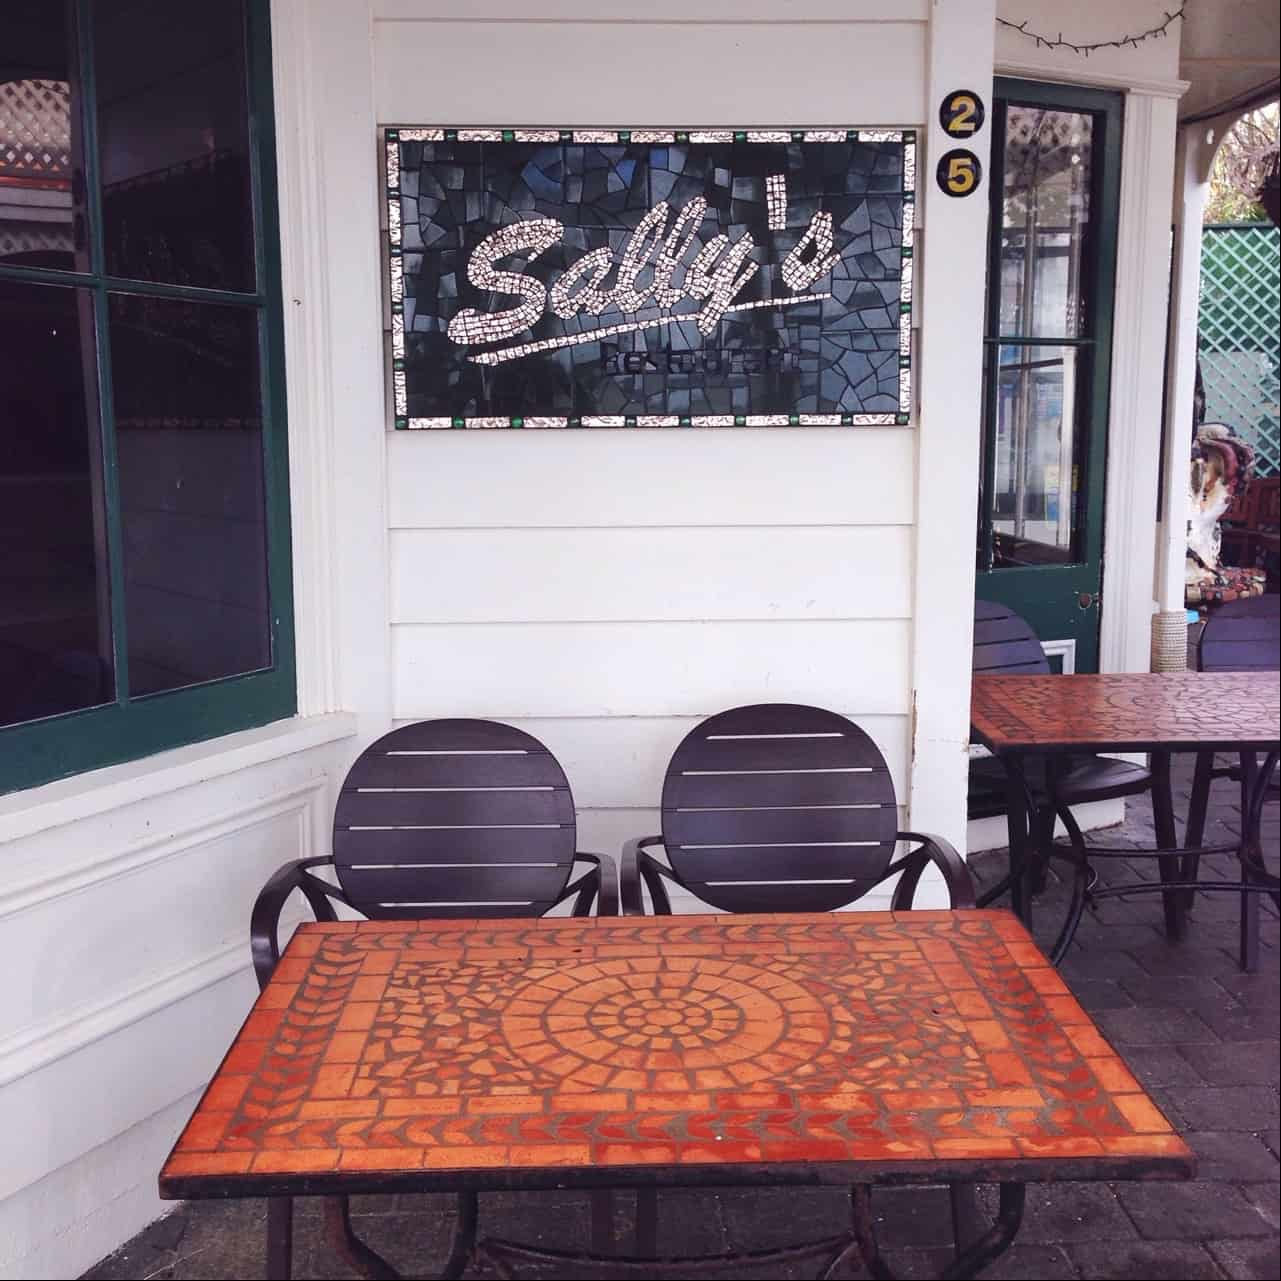 Sally's Restaurant on Russell's waterfront has been operating for decades.